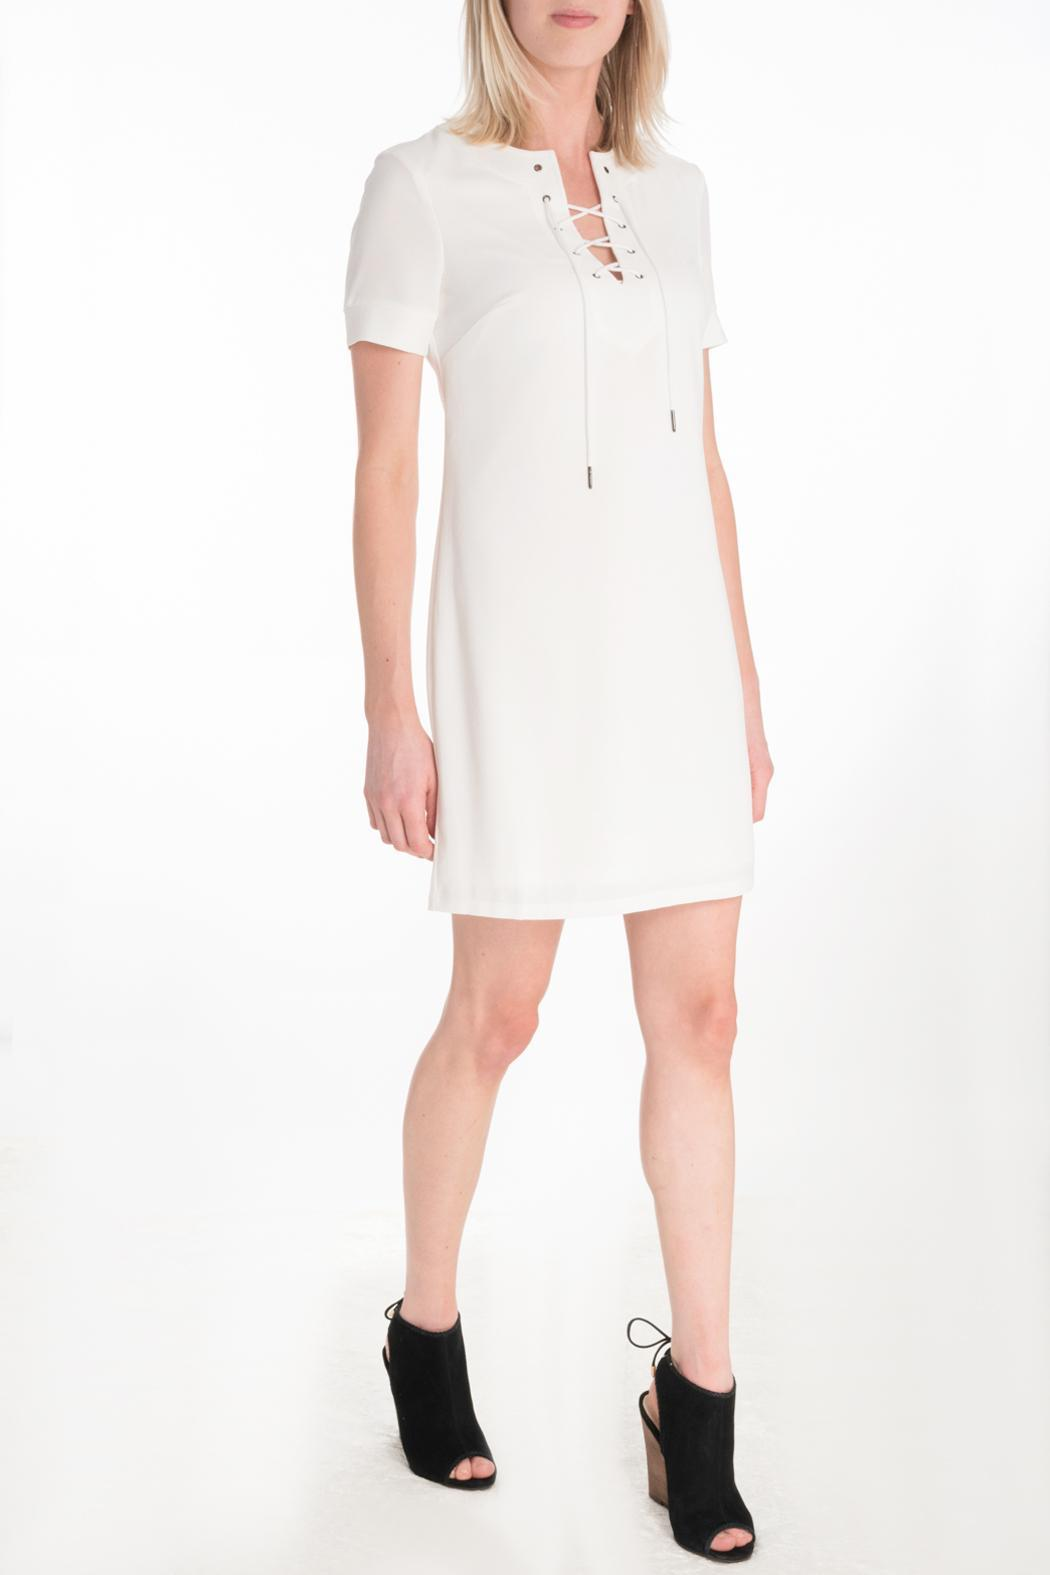 Kut from the Kloth Lace Up Dress - Main Image